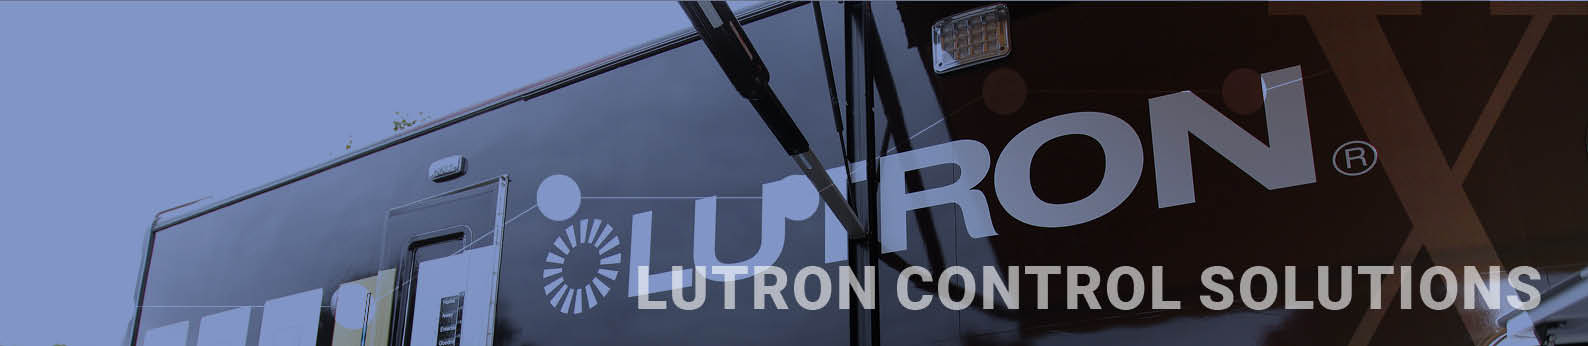 Connexion Lutron Lighting Control Solutions